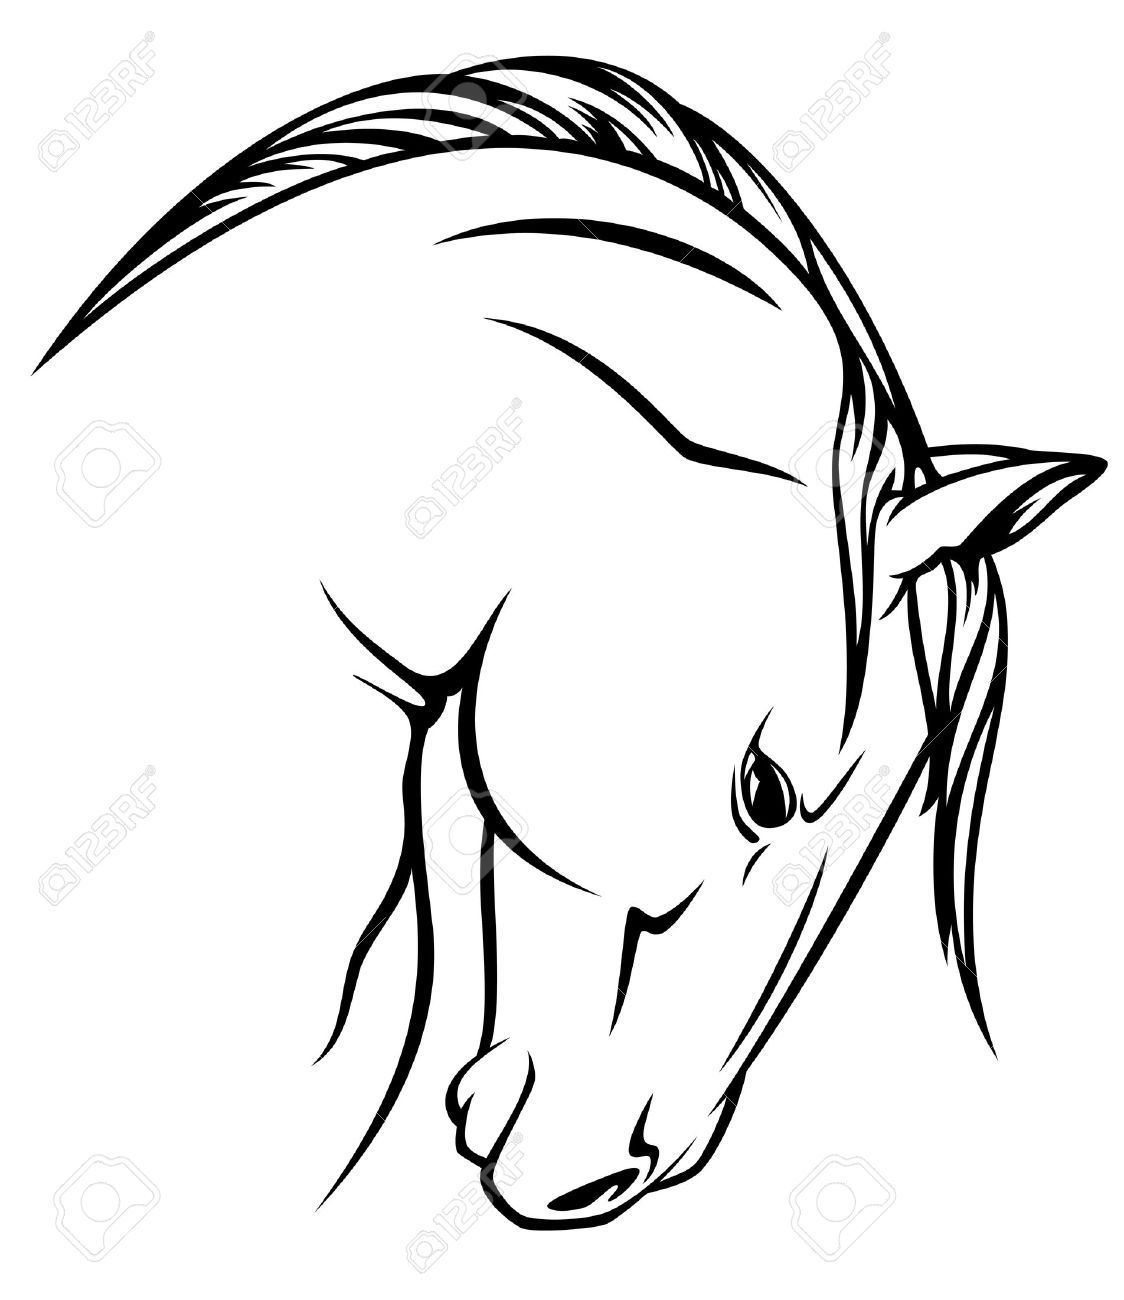 1124x1300 Stock Vector Zentangle Horse Profile, Horse Outline, Outline